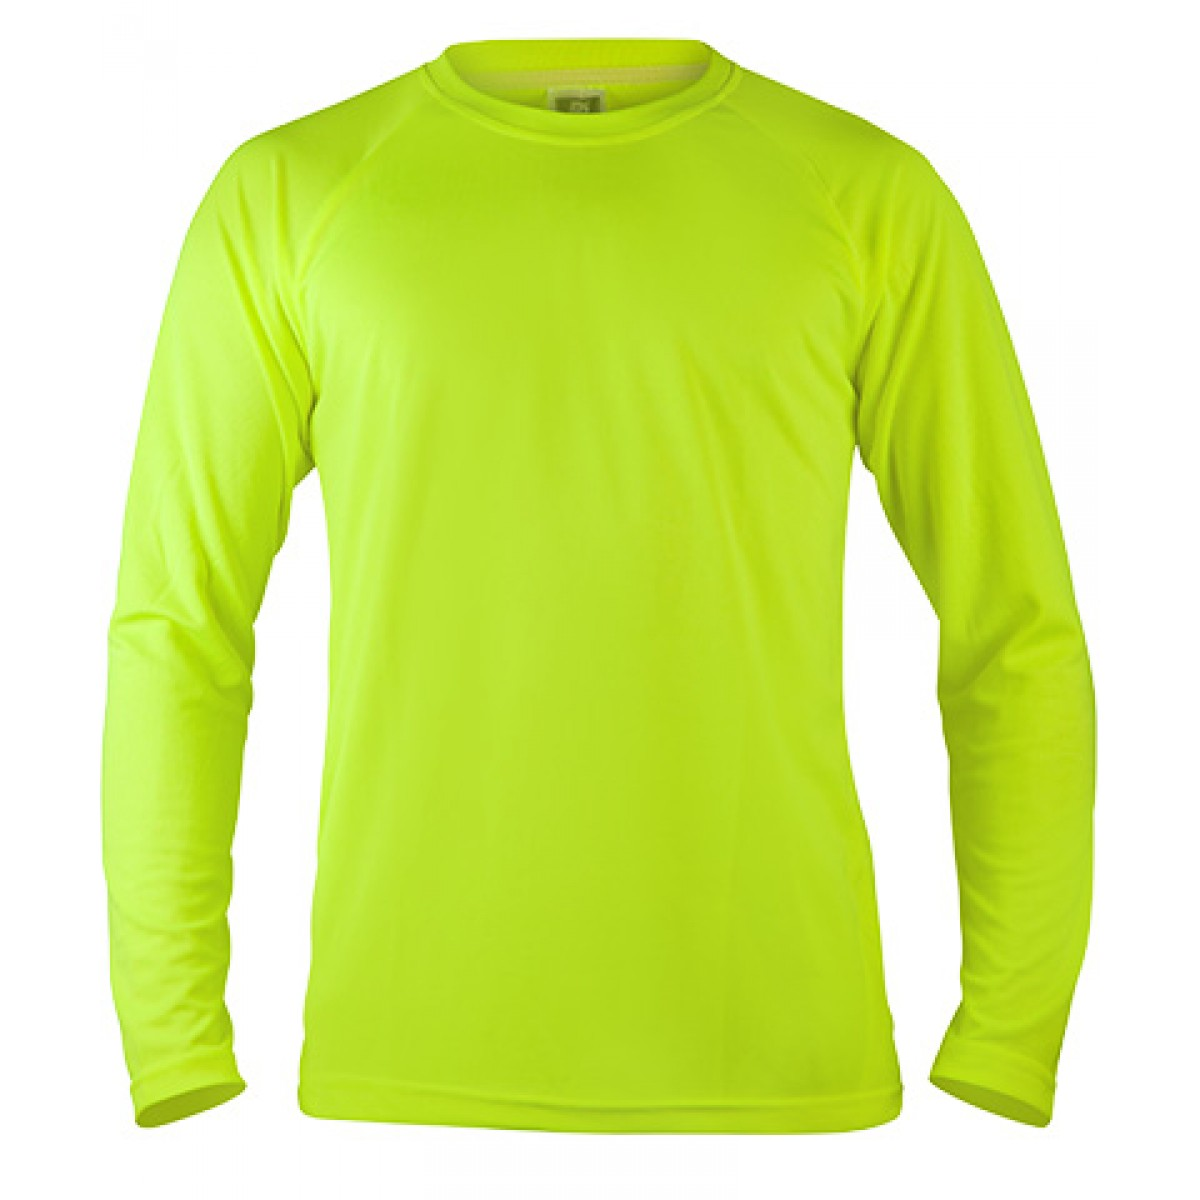 Long Sleeve Mesh Performance T-shirt-Neon Green-XL